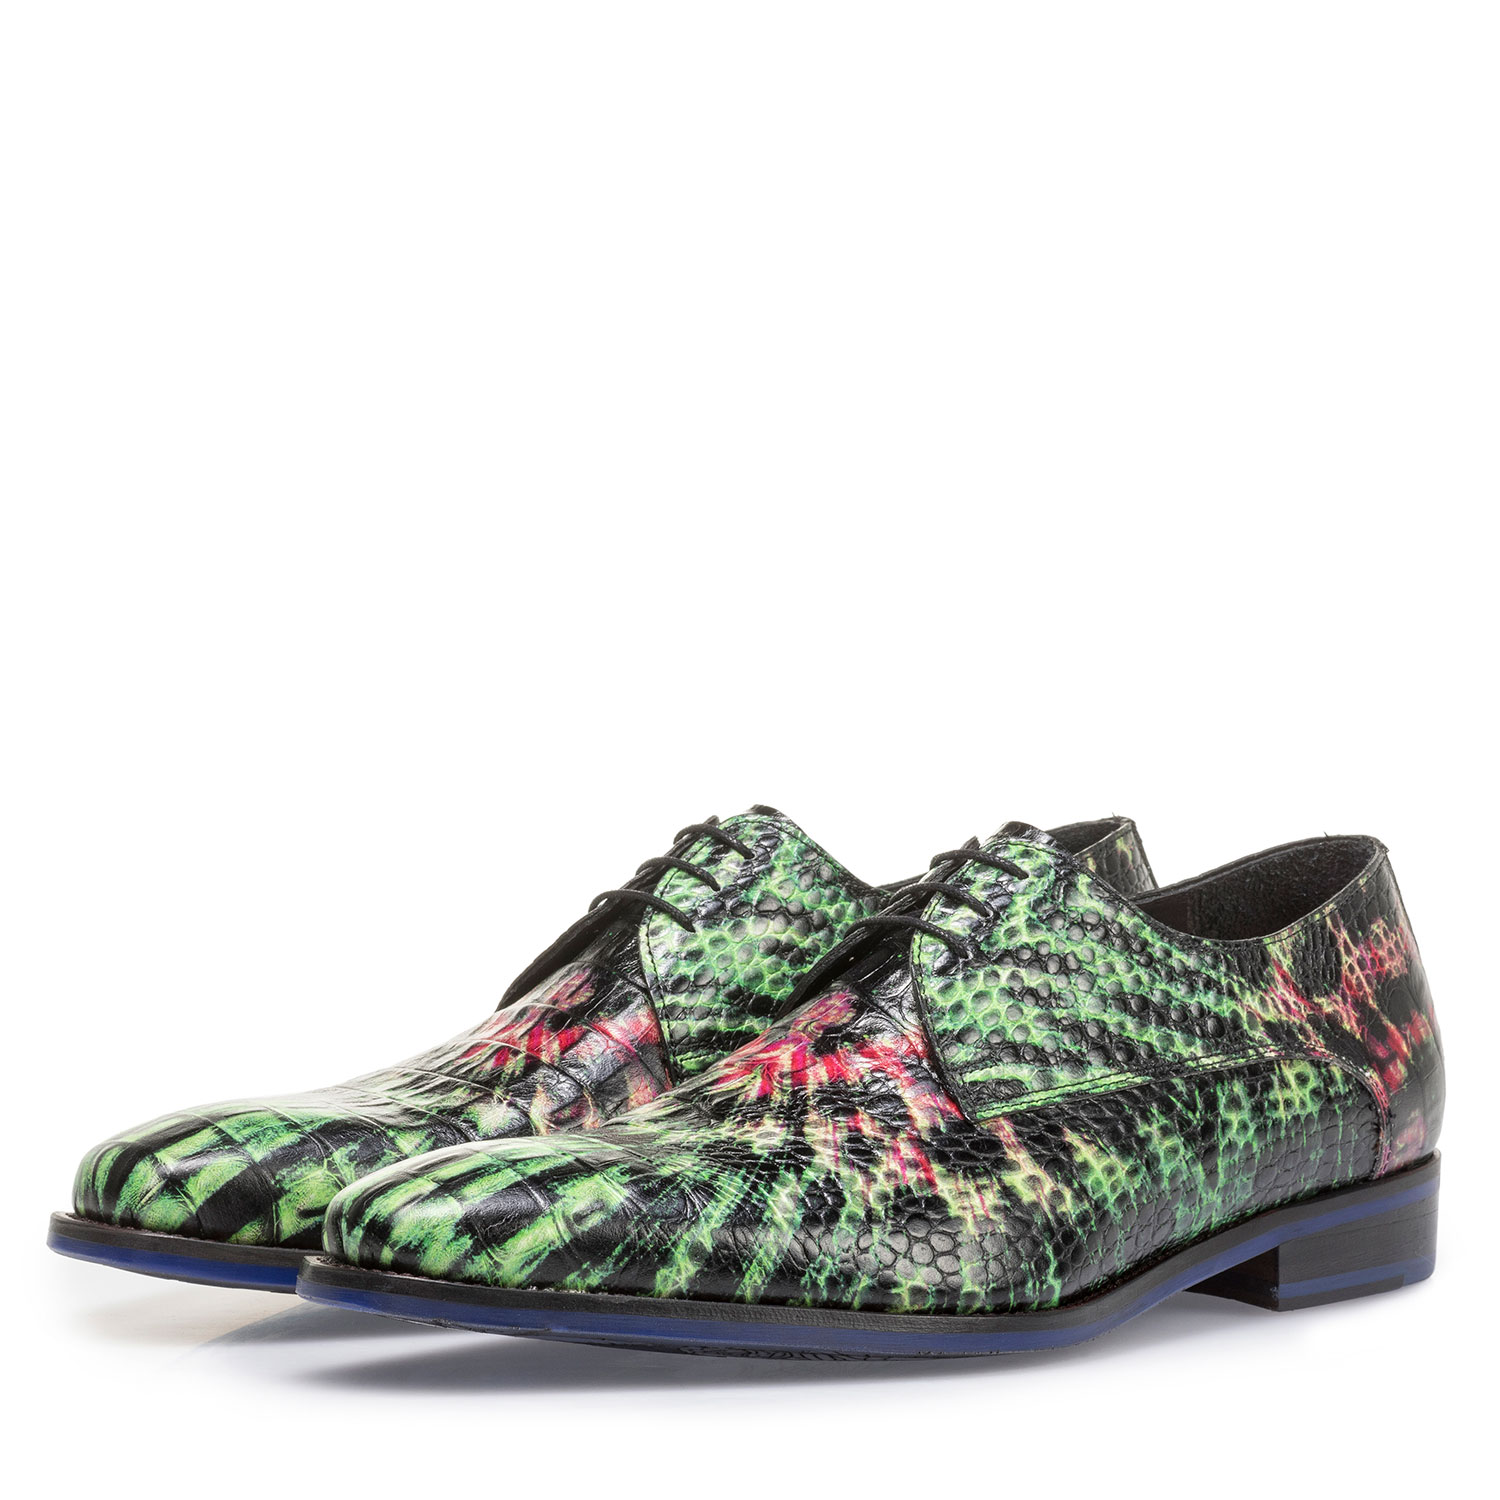 18204/02 - Premium green and pink leather lace shoe